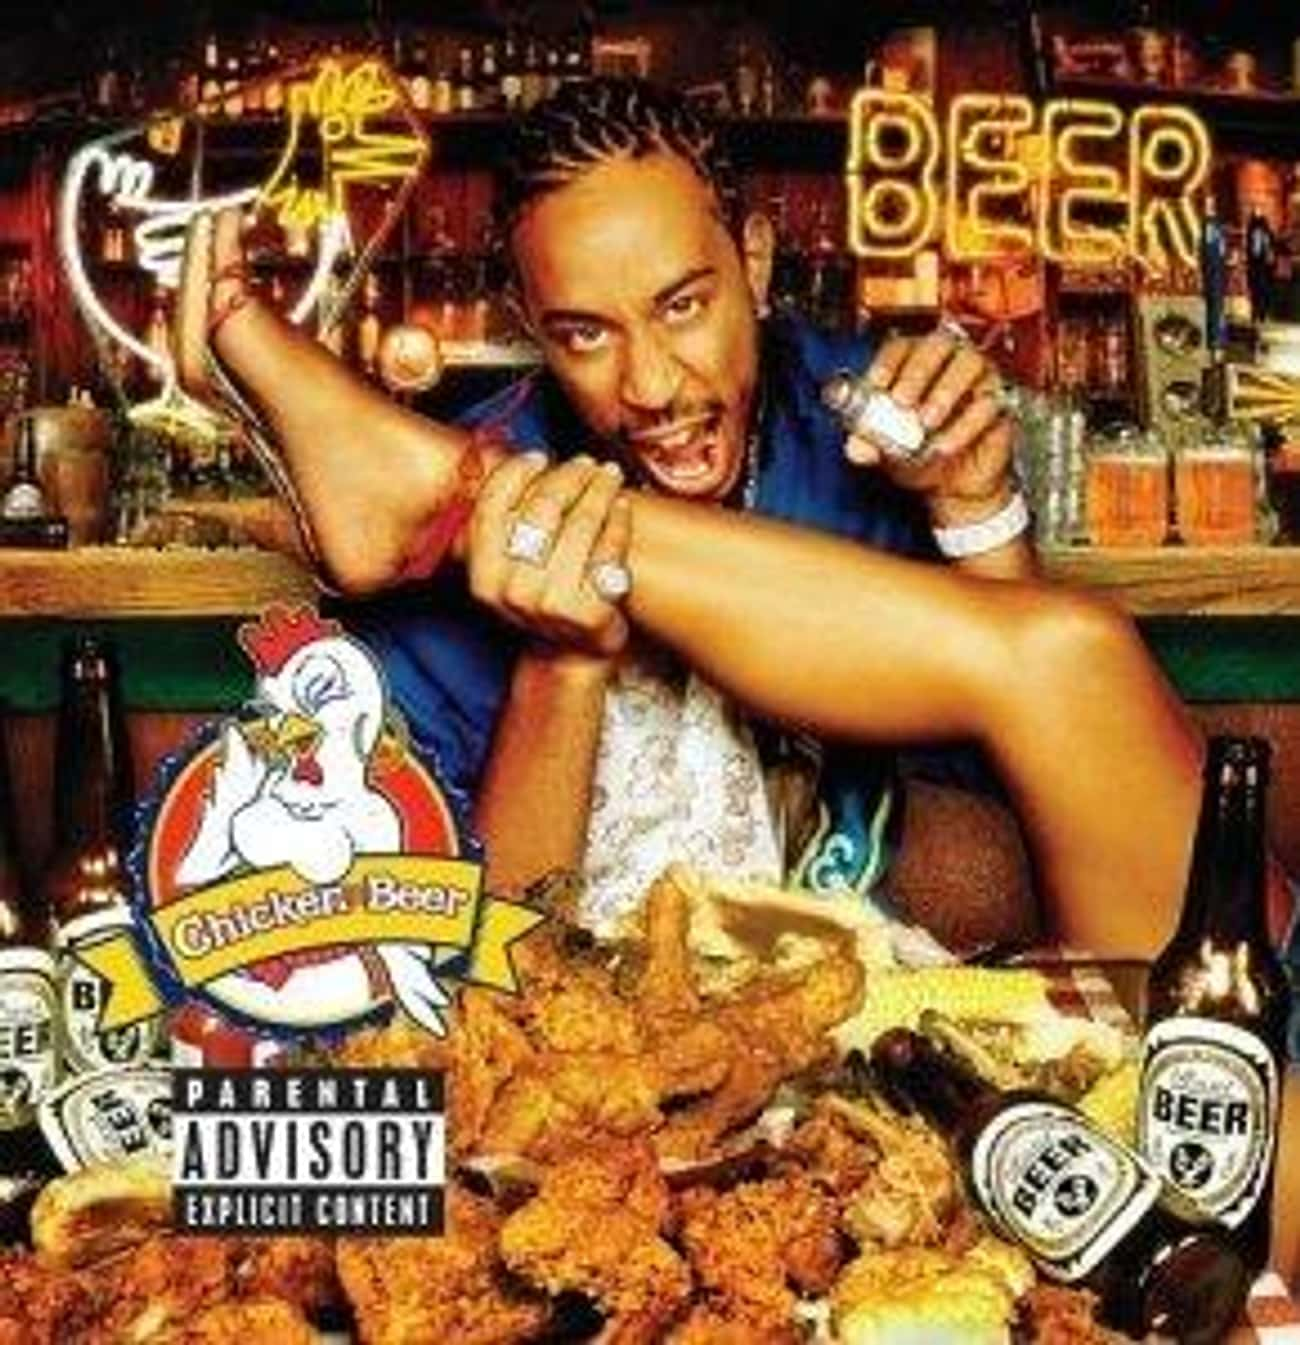 Chicken-N-Beer is listed (or ranked) 3 on the list The Best Ludacris Albums of All Time